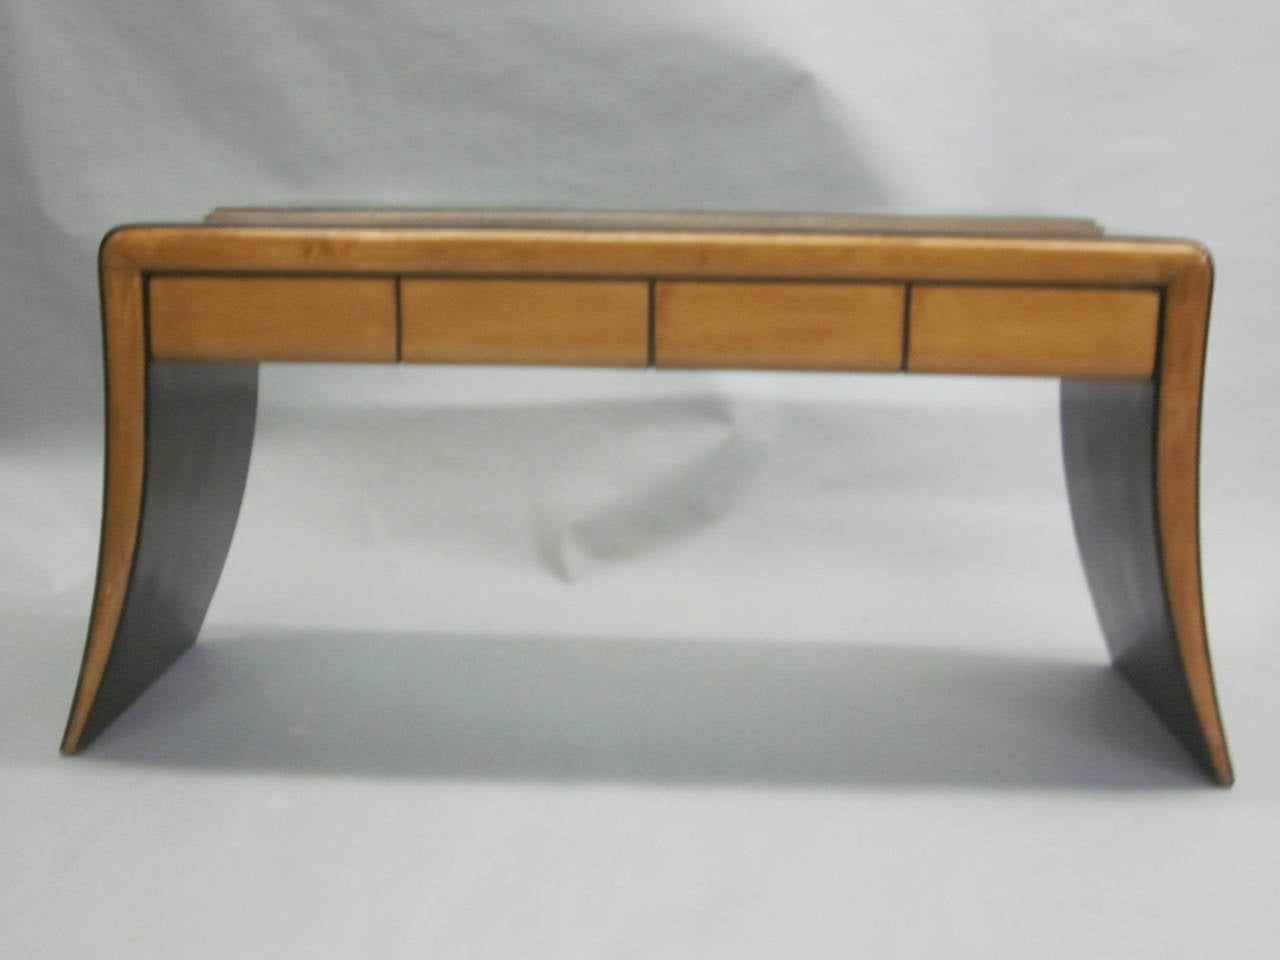 Italian Mid-Century Modern Neoclassical Vanity / Sofa Table by Paolo Buffa, 1930 4